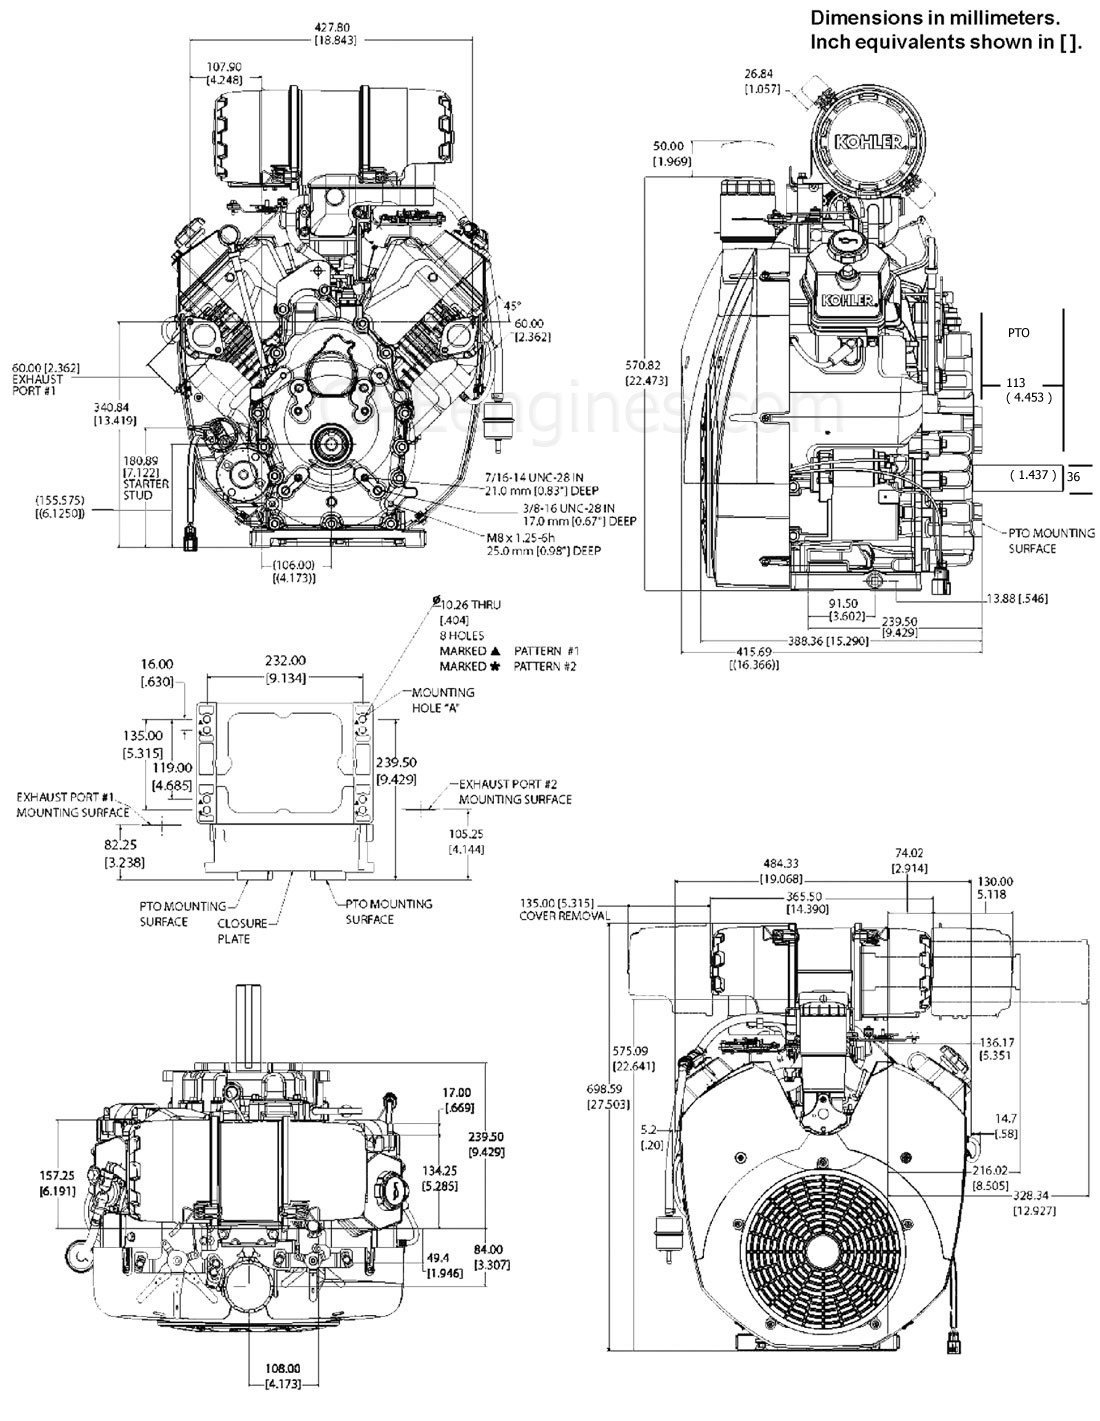 CH980_drawings ch940 ch960 ch980 ch1000 drawings kohler engines and parts store kohler ch440 wiring diagram at fashall.co